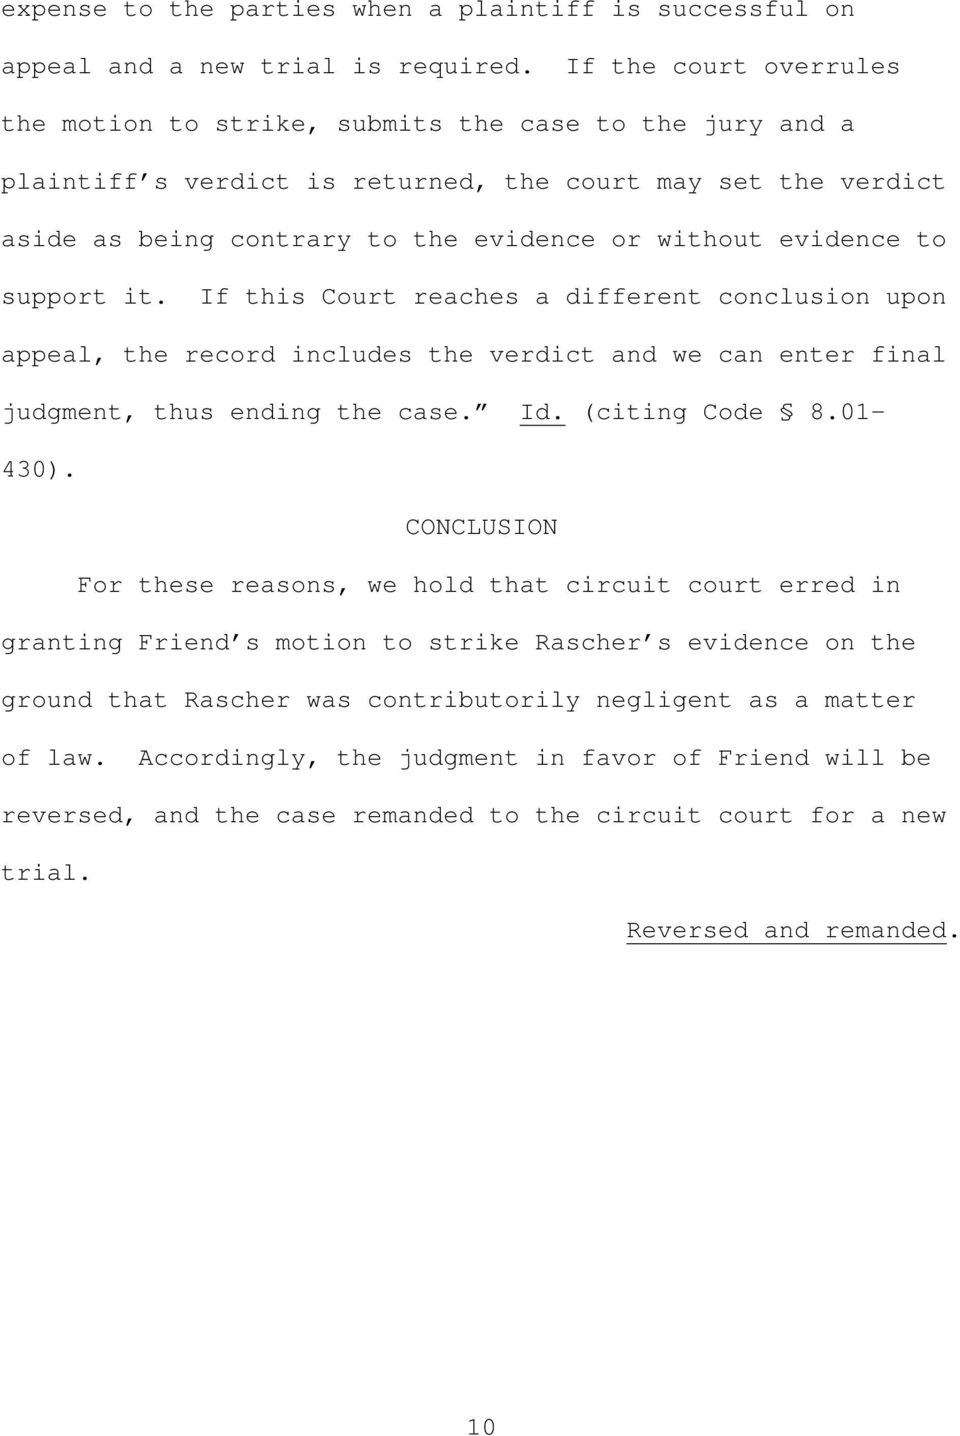 evidence to support it. If this Court reaches a different conclusion upon appeal, the record includes the verdict and we can enter final judgment, thus ending the case. Id. (citing Code 8.01-430).